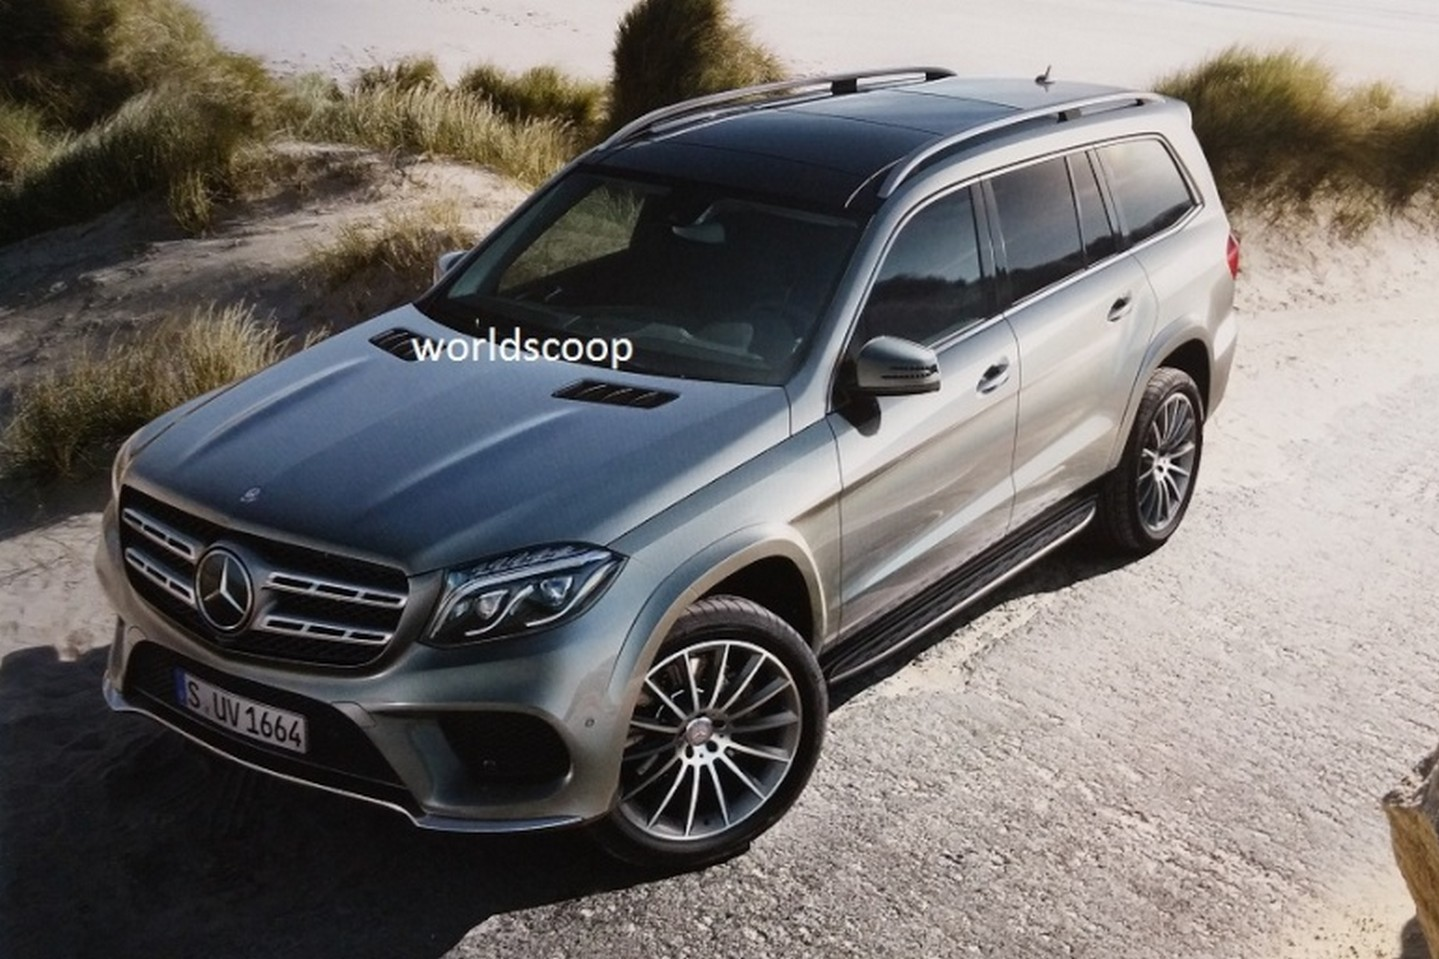 2015 Mercedes-Benz GL Photo Leak - WorldScoop